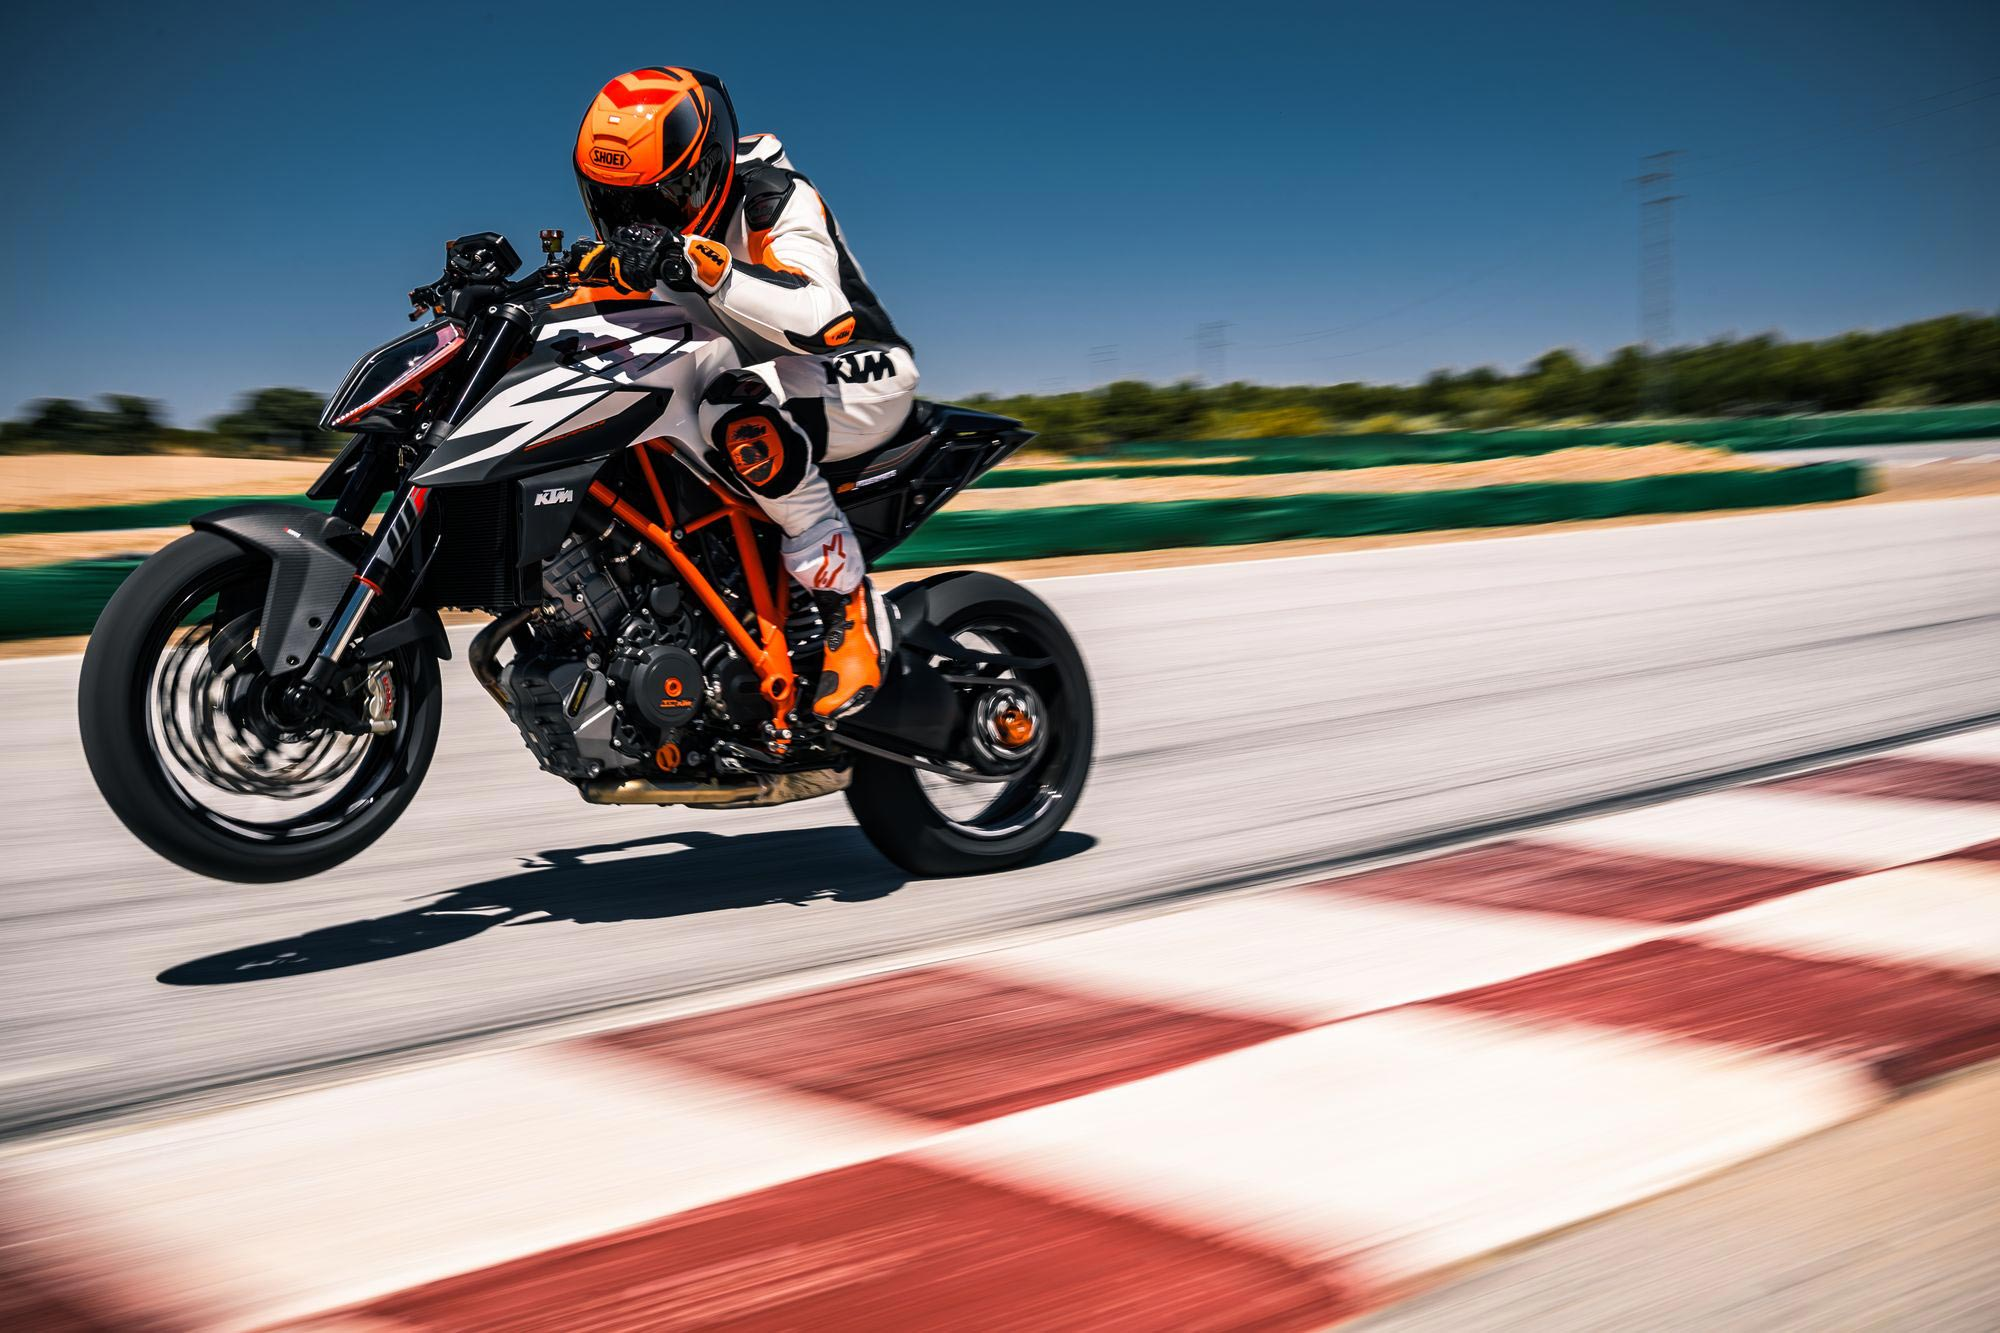 2019 KTM 1290 Super Duke R Guide • Total Motorcycle